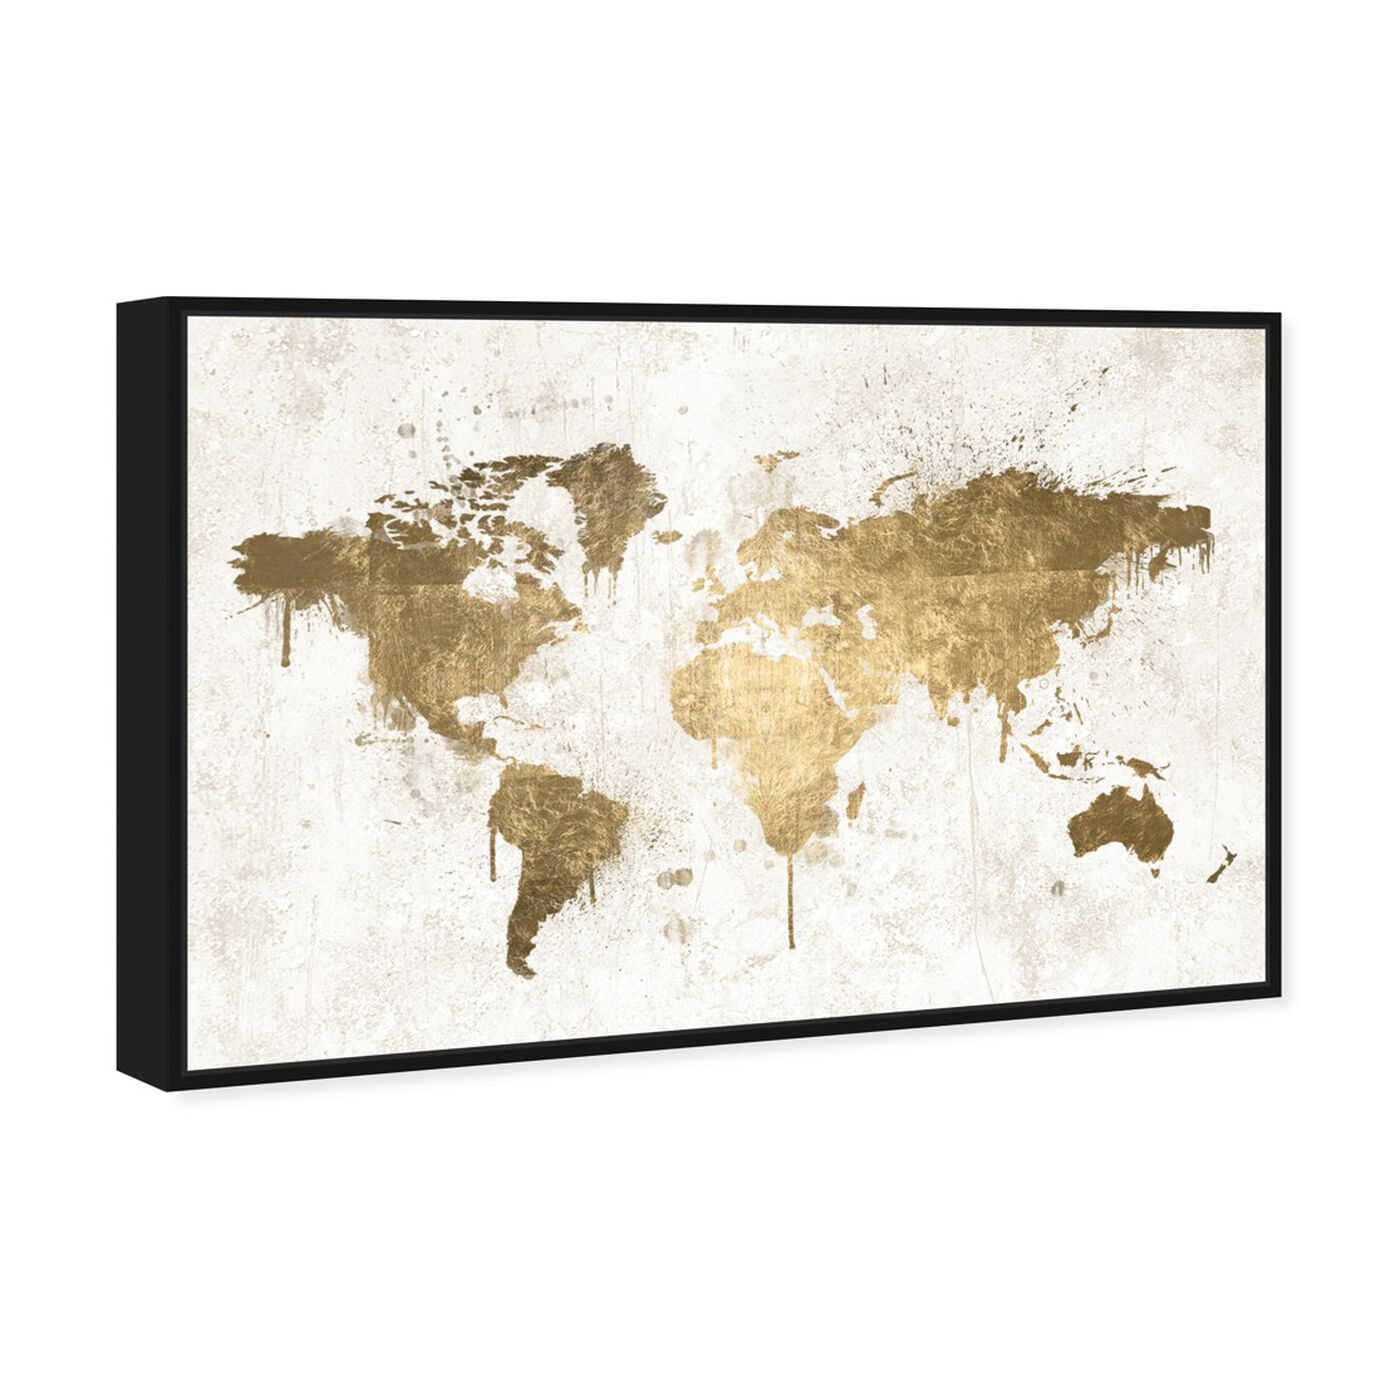 Angled view of Mapamundi White Gold featuring maps and flags and world maps art.